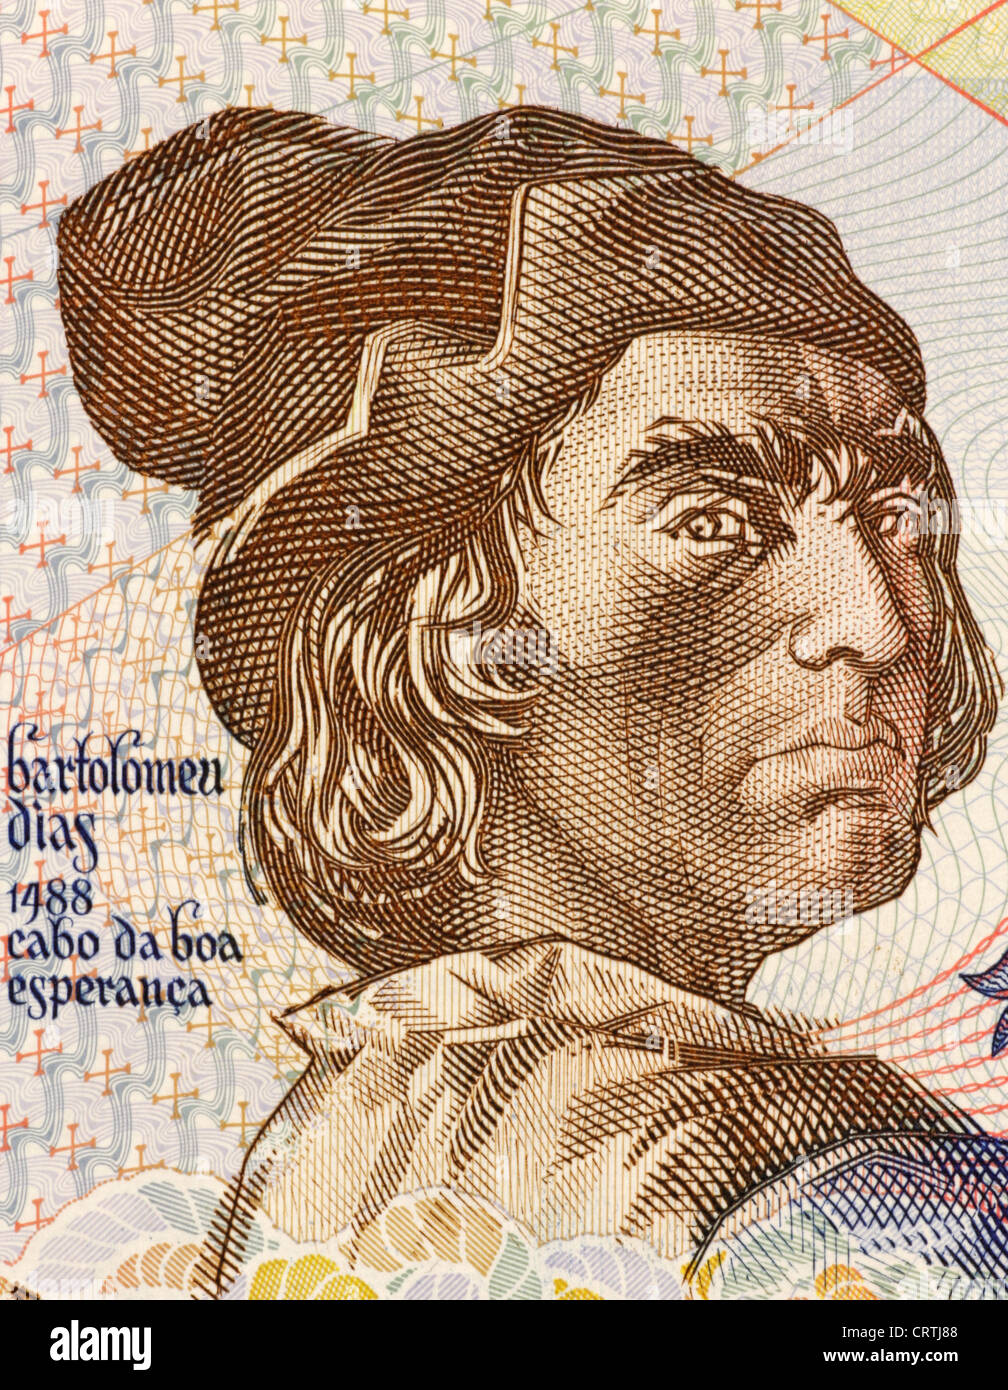 Bartolomeu Dias (1451-1500) on 2000 Escudos 1991 Banknote from Portugal. Nobleman of the royal household and explorer. - Stock Image